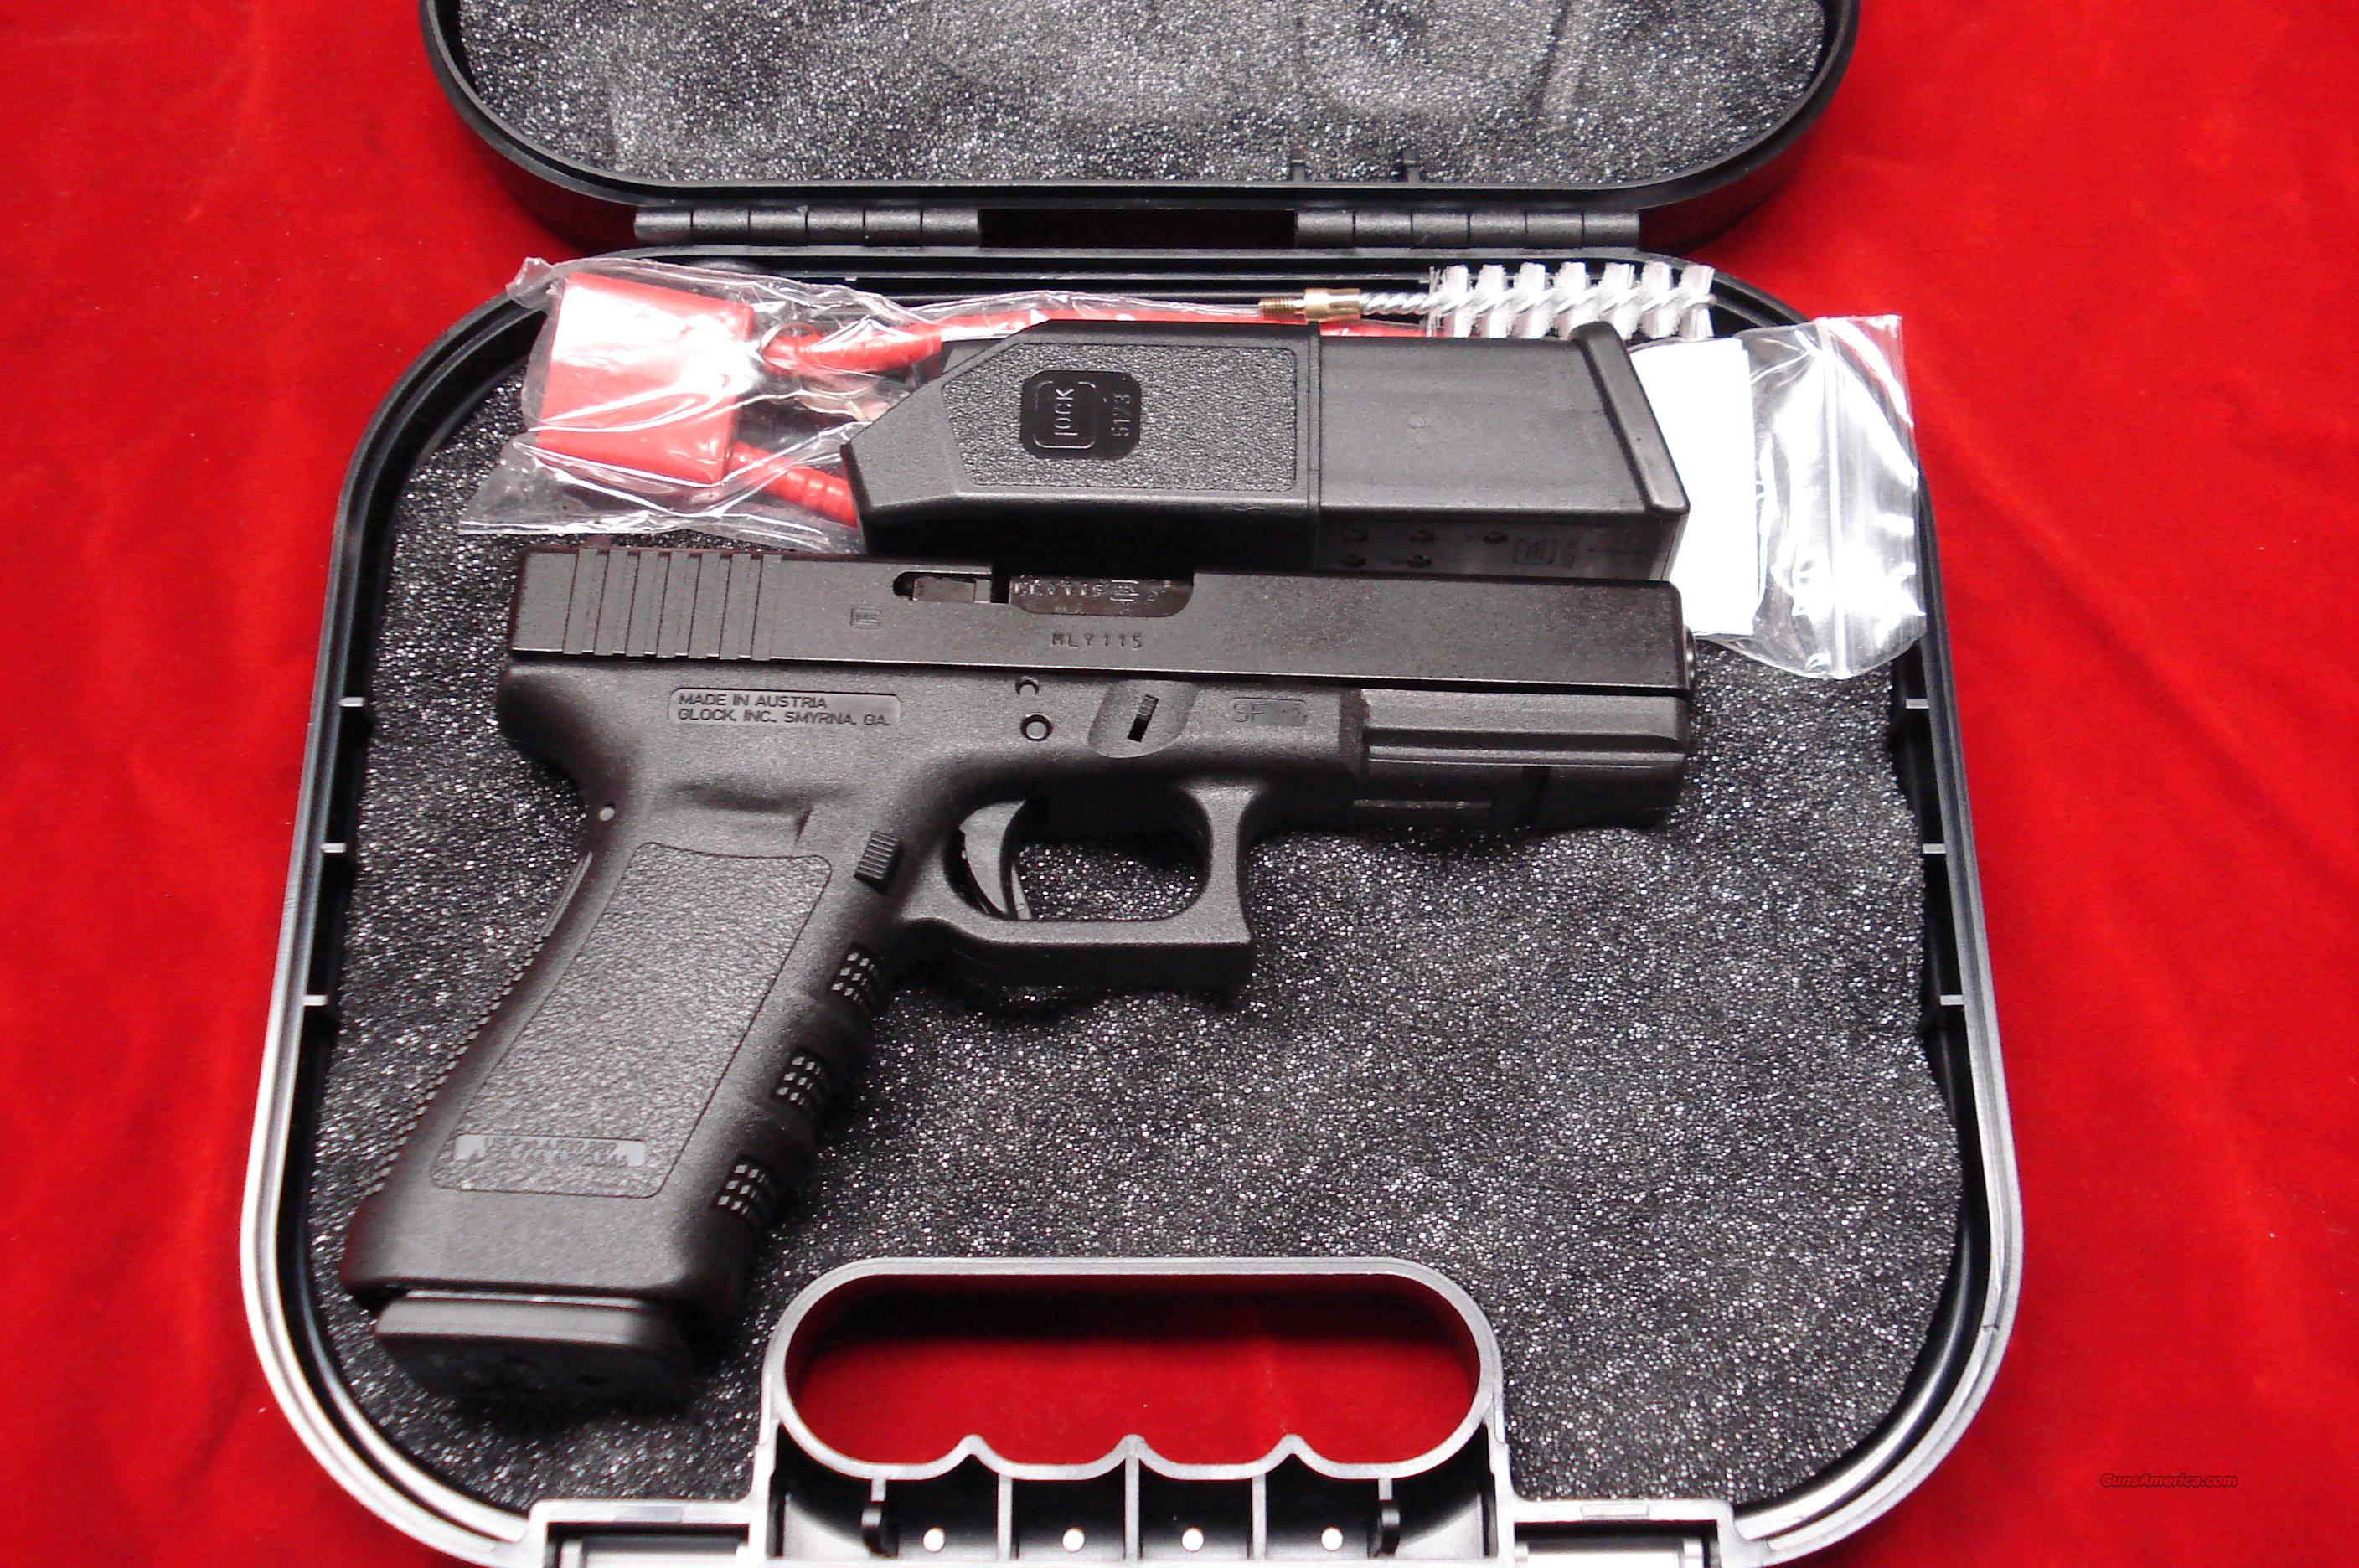 GLOCK MODEL 21SF (SLIM FRAME) 45ACP NEW   Guns > Pistols > Glock Pistols > 20/21